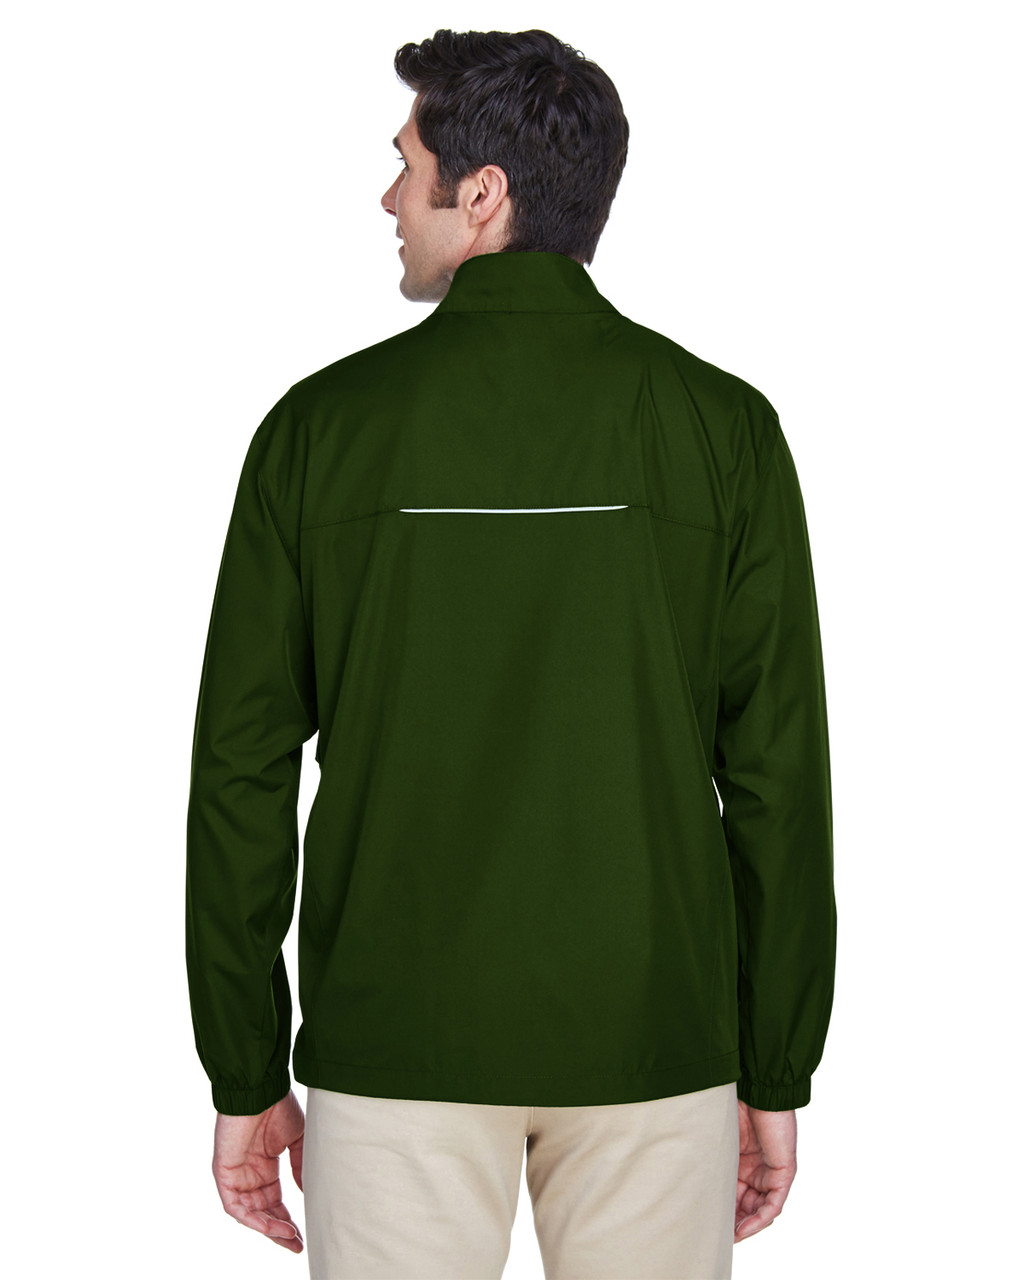 Forest Green - Back, 88183 Ash City - Core 365 Motivate Unlined Lightweight Jacket | Blankclothing.ca